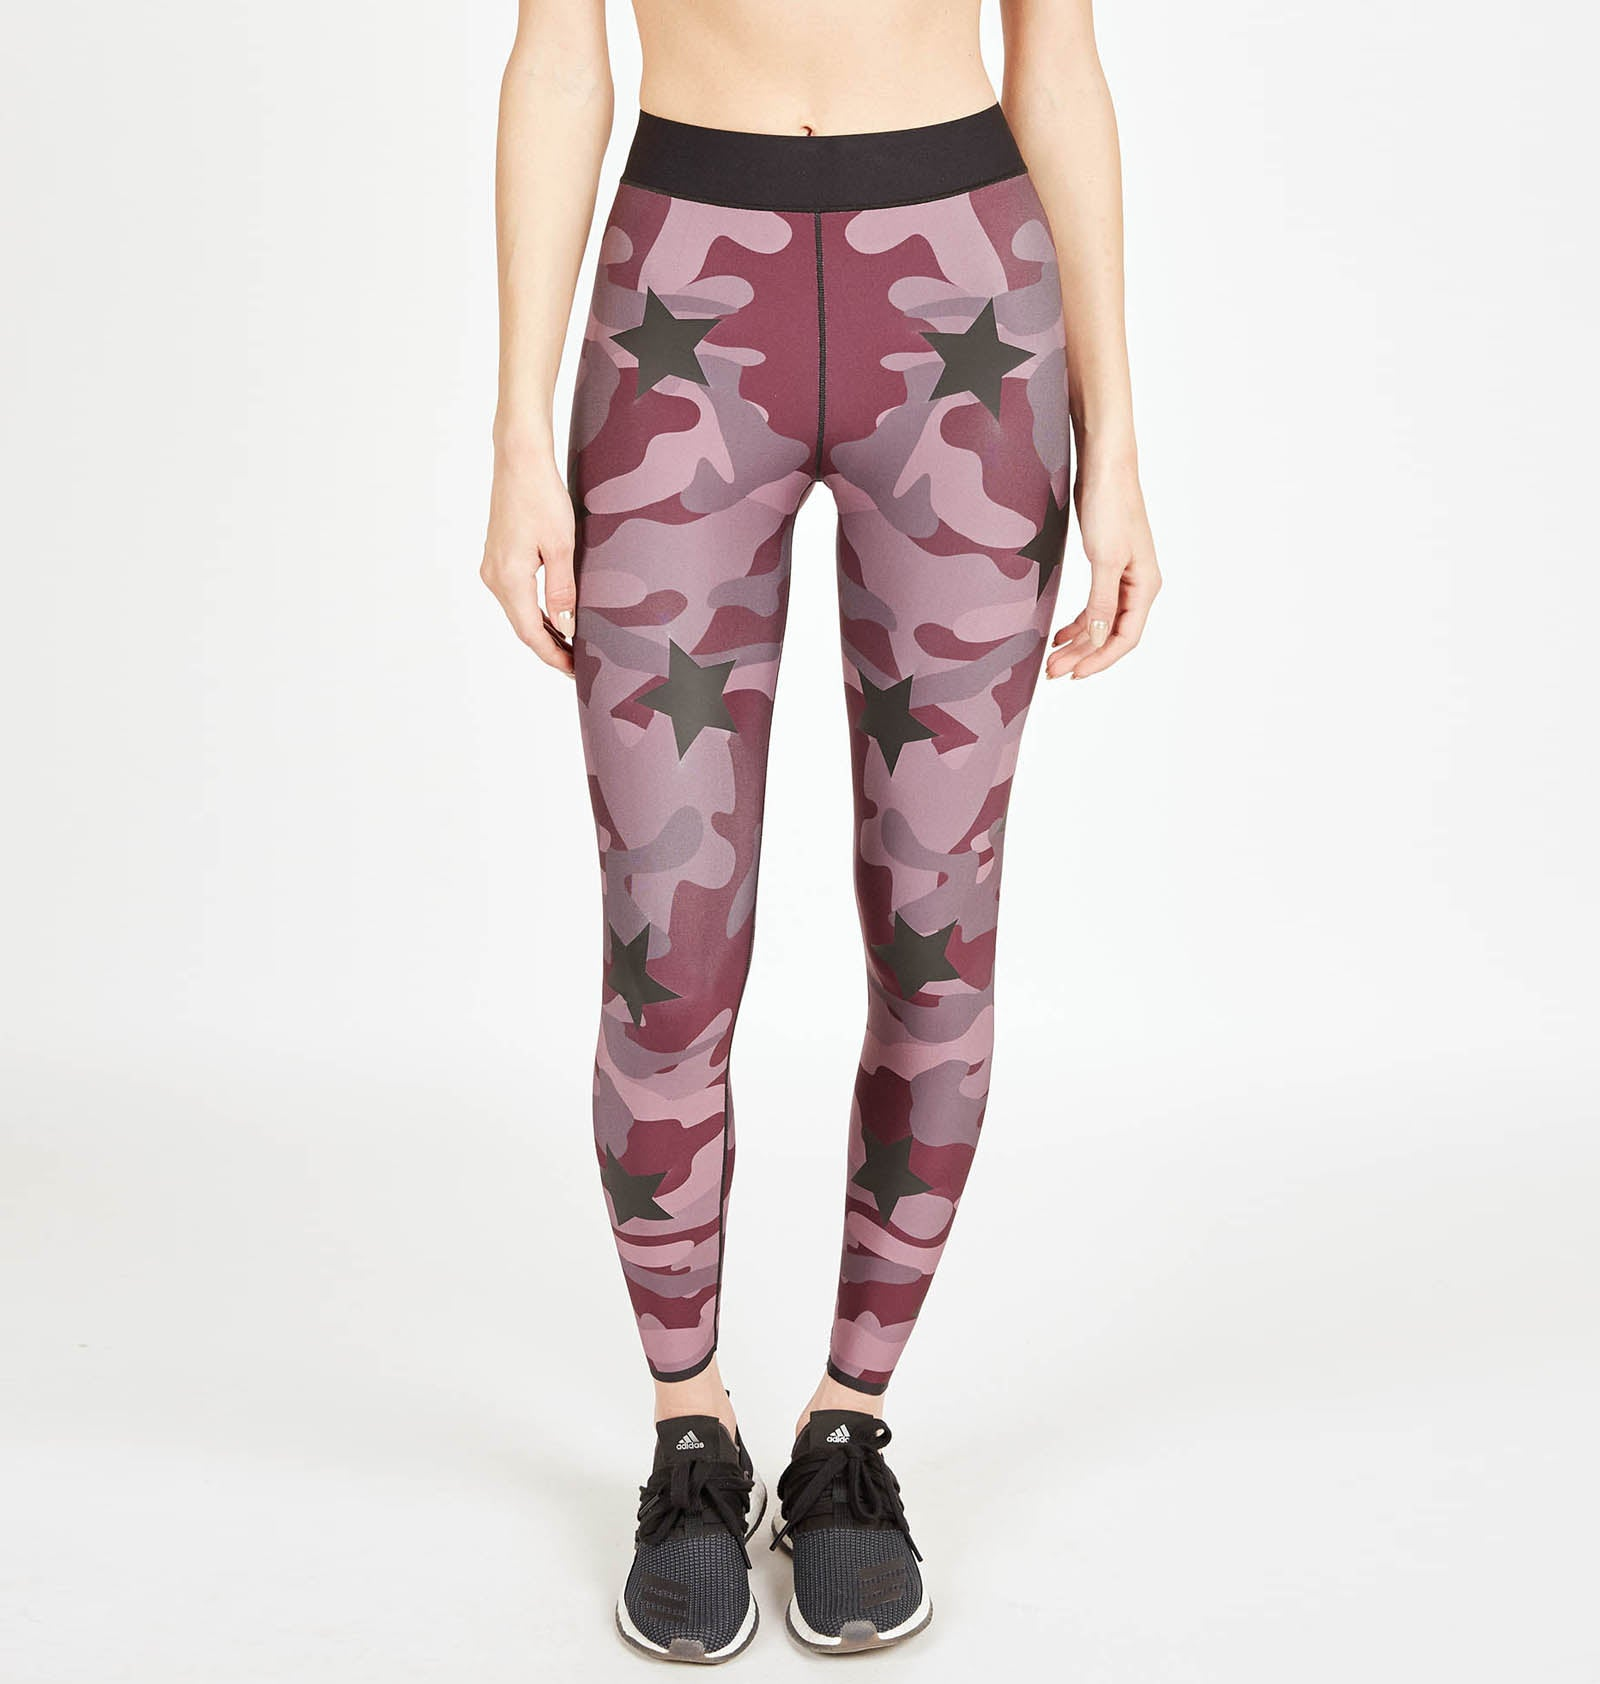 48e7fbc0bee5c Silk Camo Knockout Legging – Ultracor